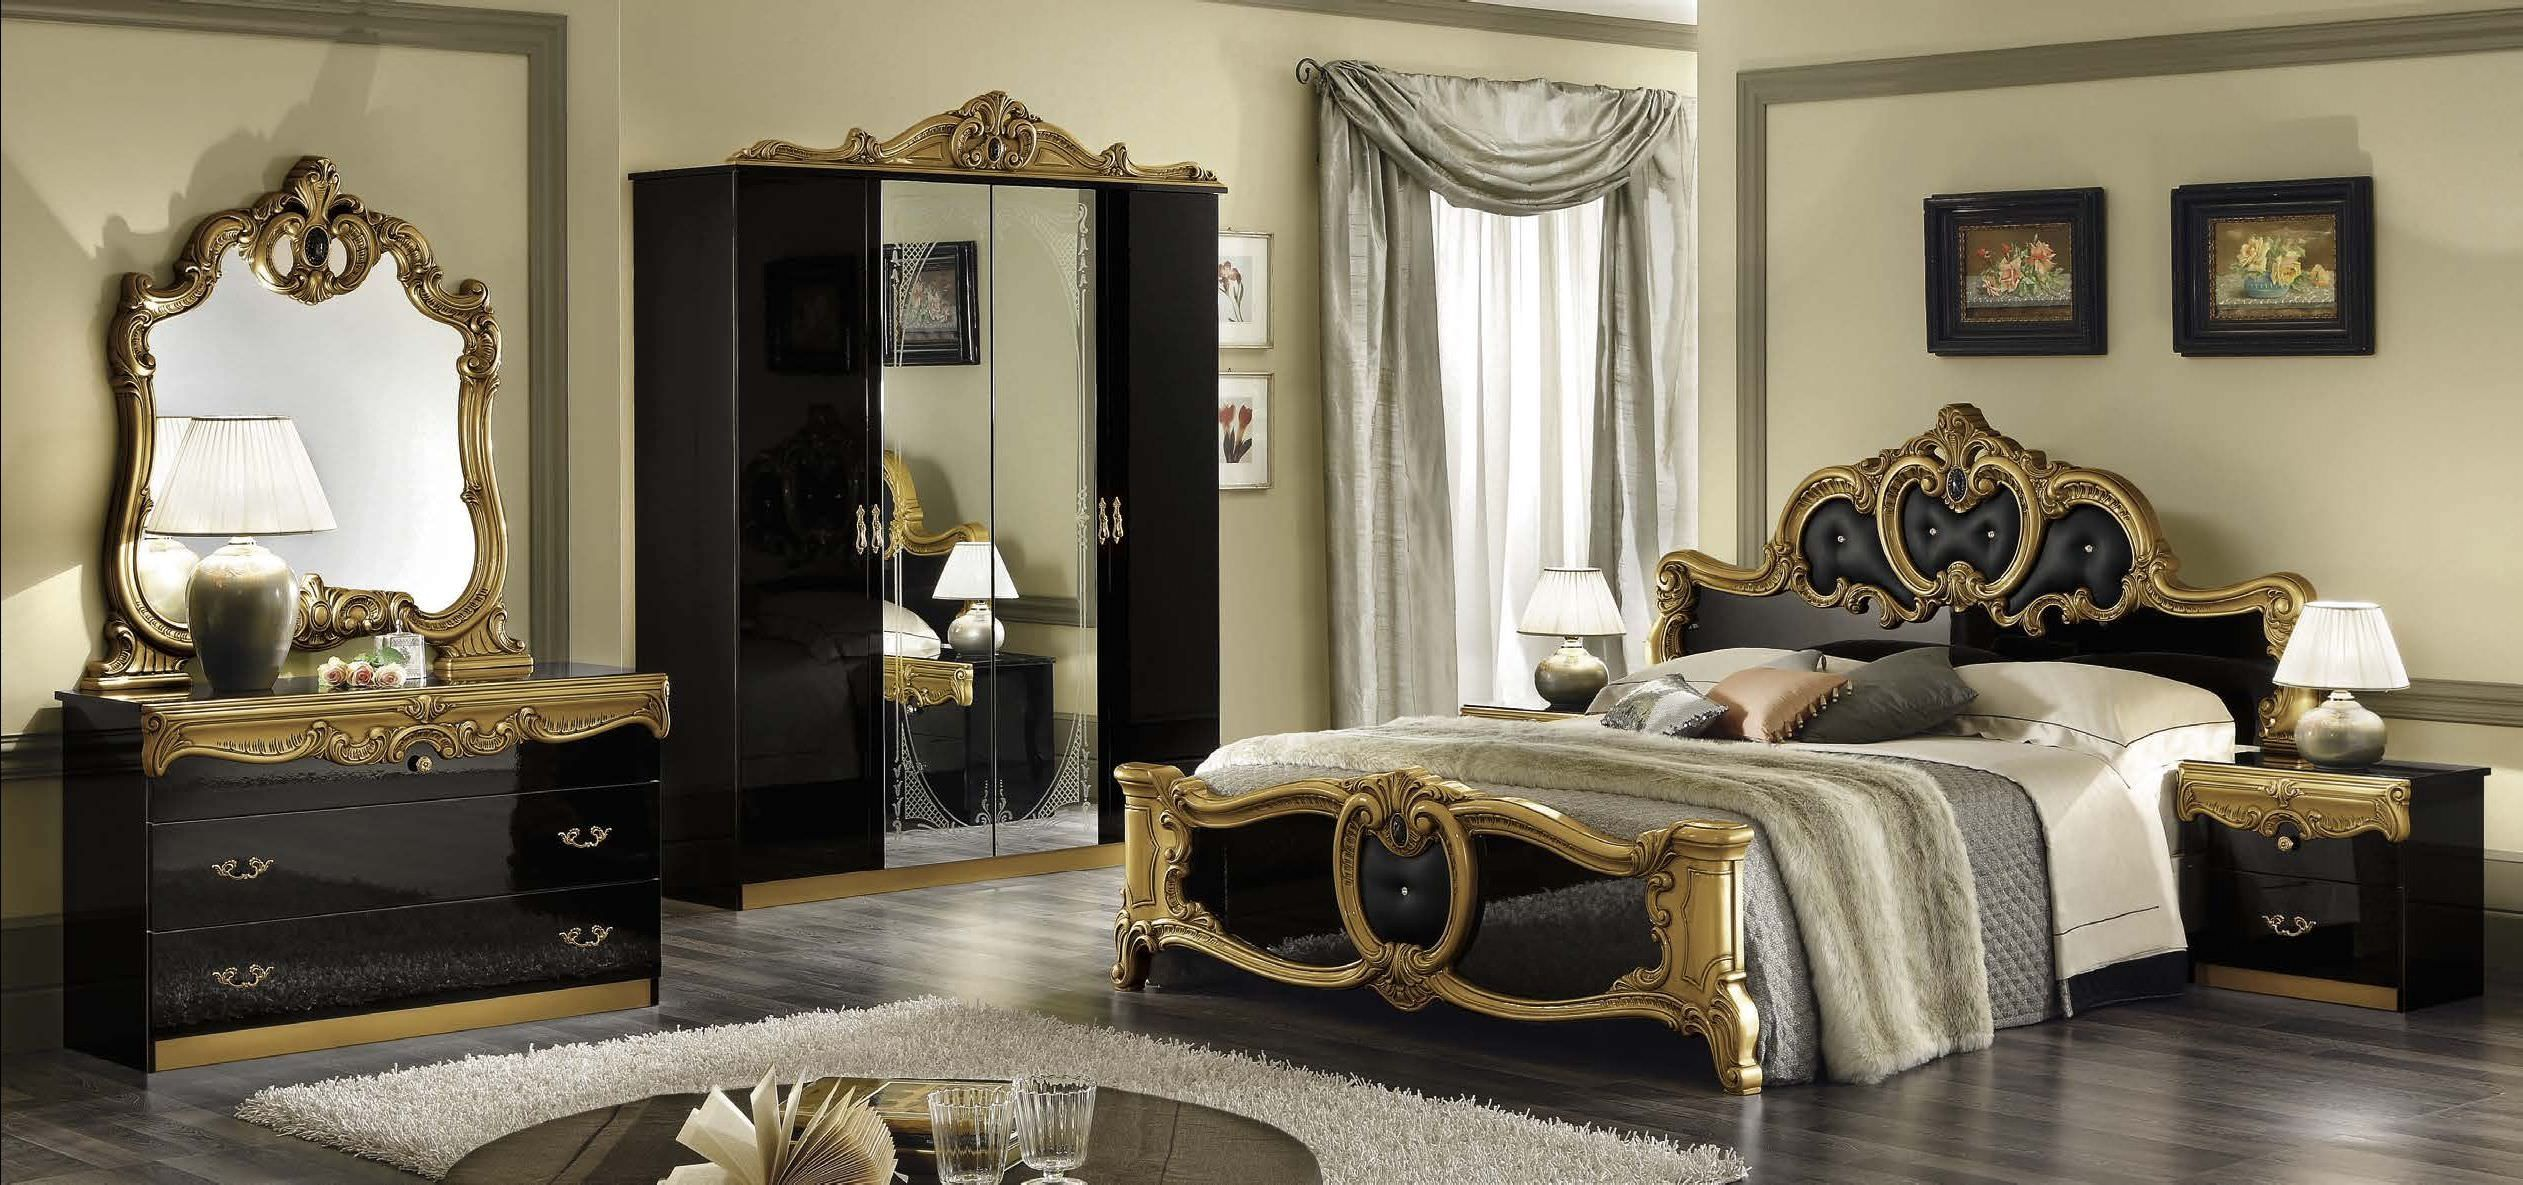 Marvelous Black And Gold Bedroom Design Black Gold Bedroom Decorating  Design Furniture Ideas Decoration Idea   Home Decor  Master Bedroom    Pinterest. Marvelous Black And Gold Bedroom Design Black Gold Bedroom